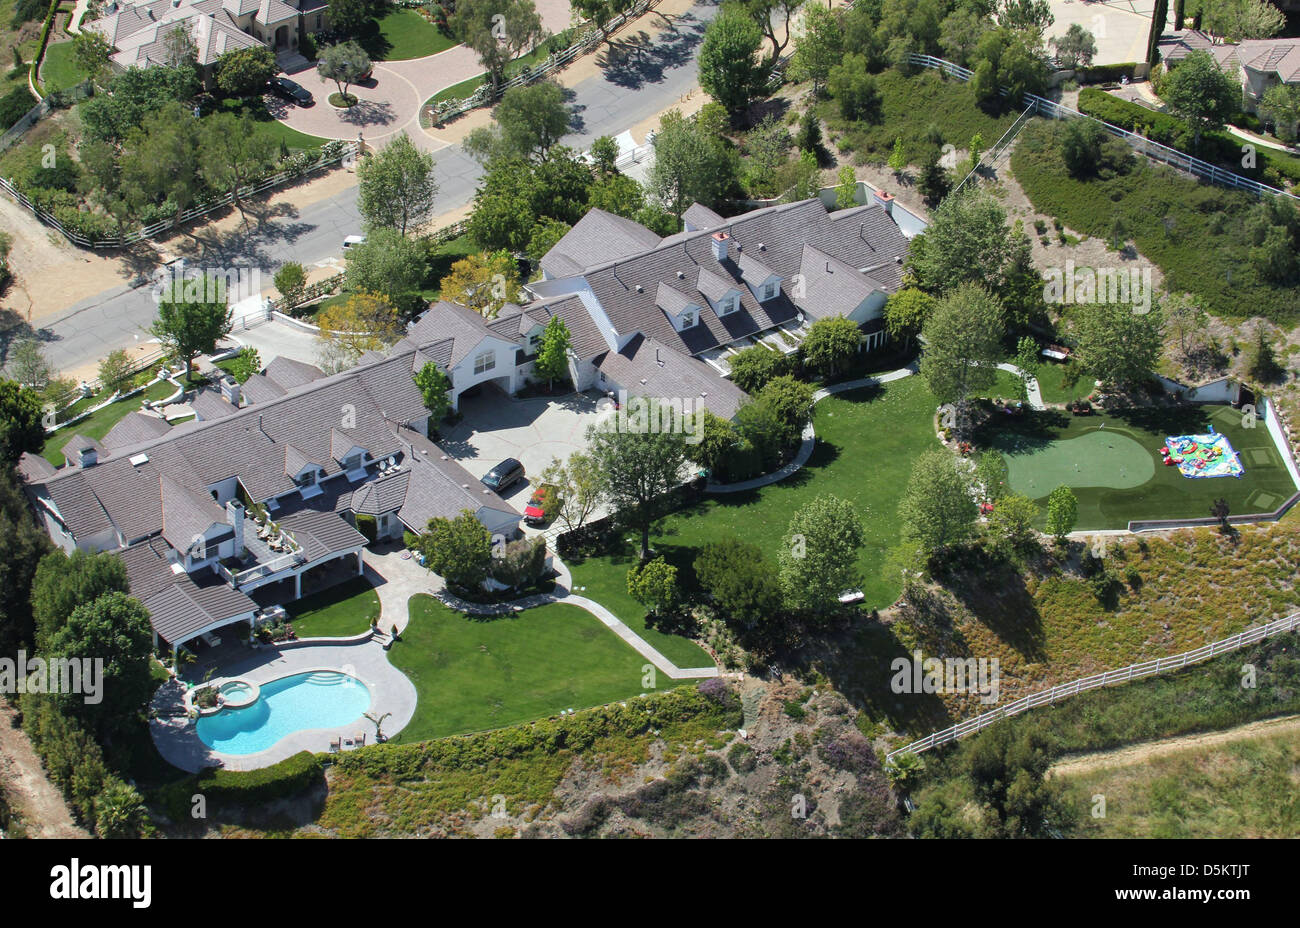 Aerial view of jennifer lopez and marc anthony 39 s home in for Jennifer lopez house address